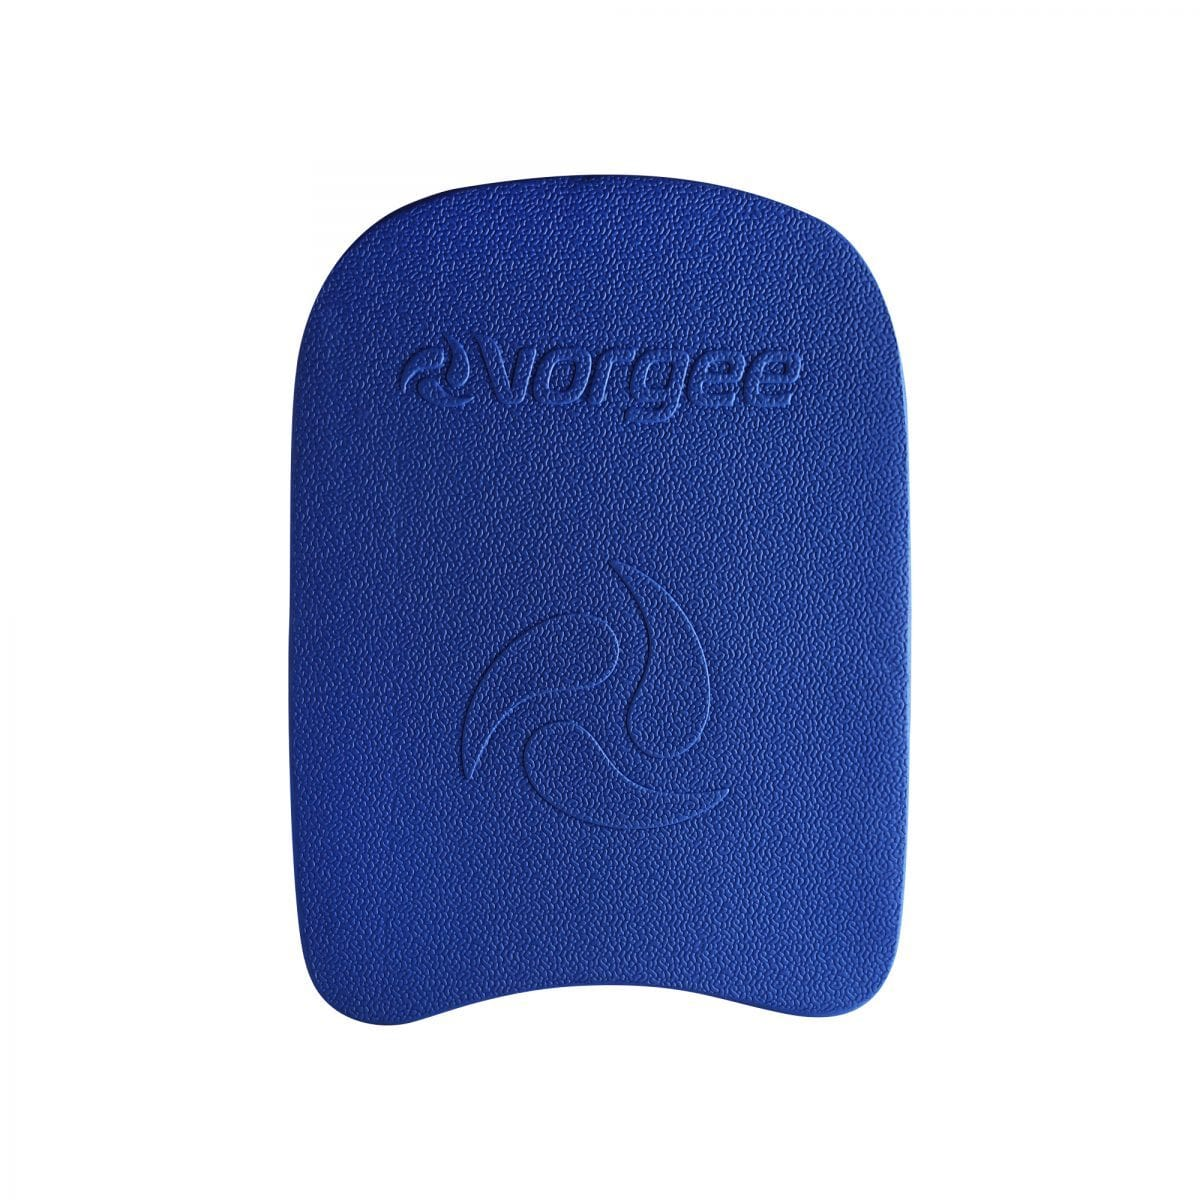 Vorgee Medium Kickboard